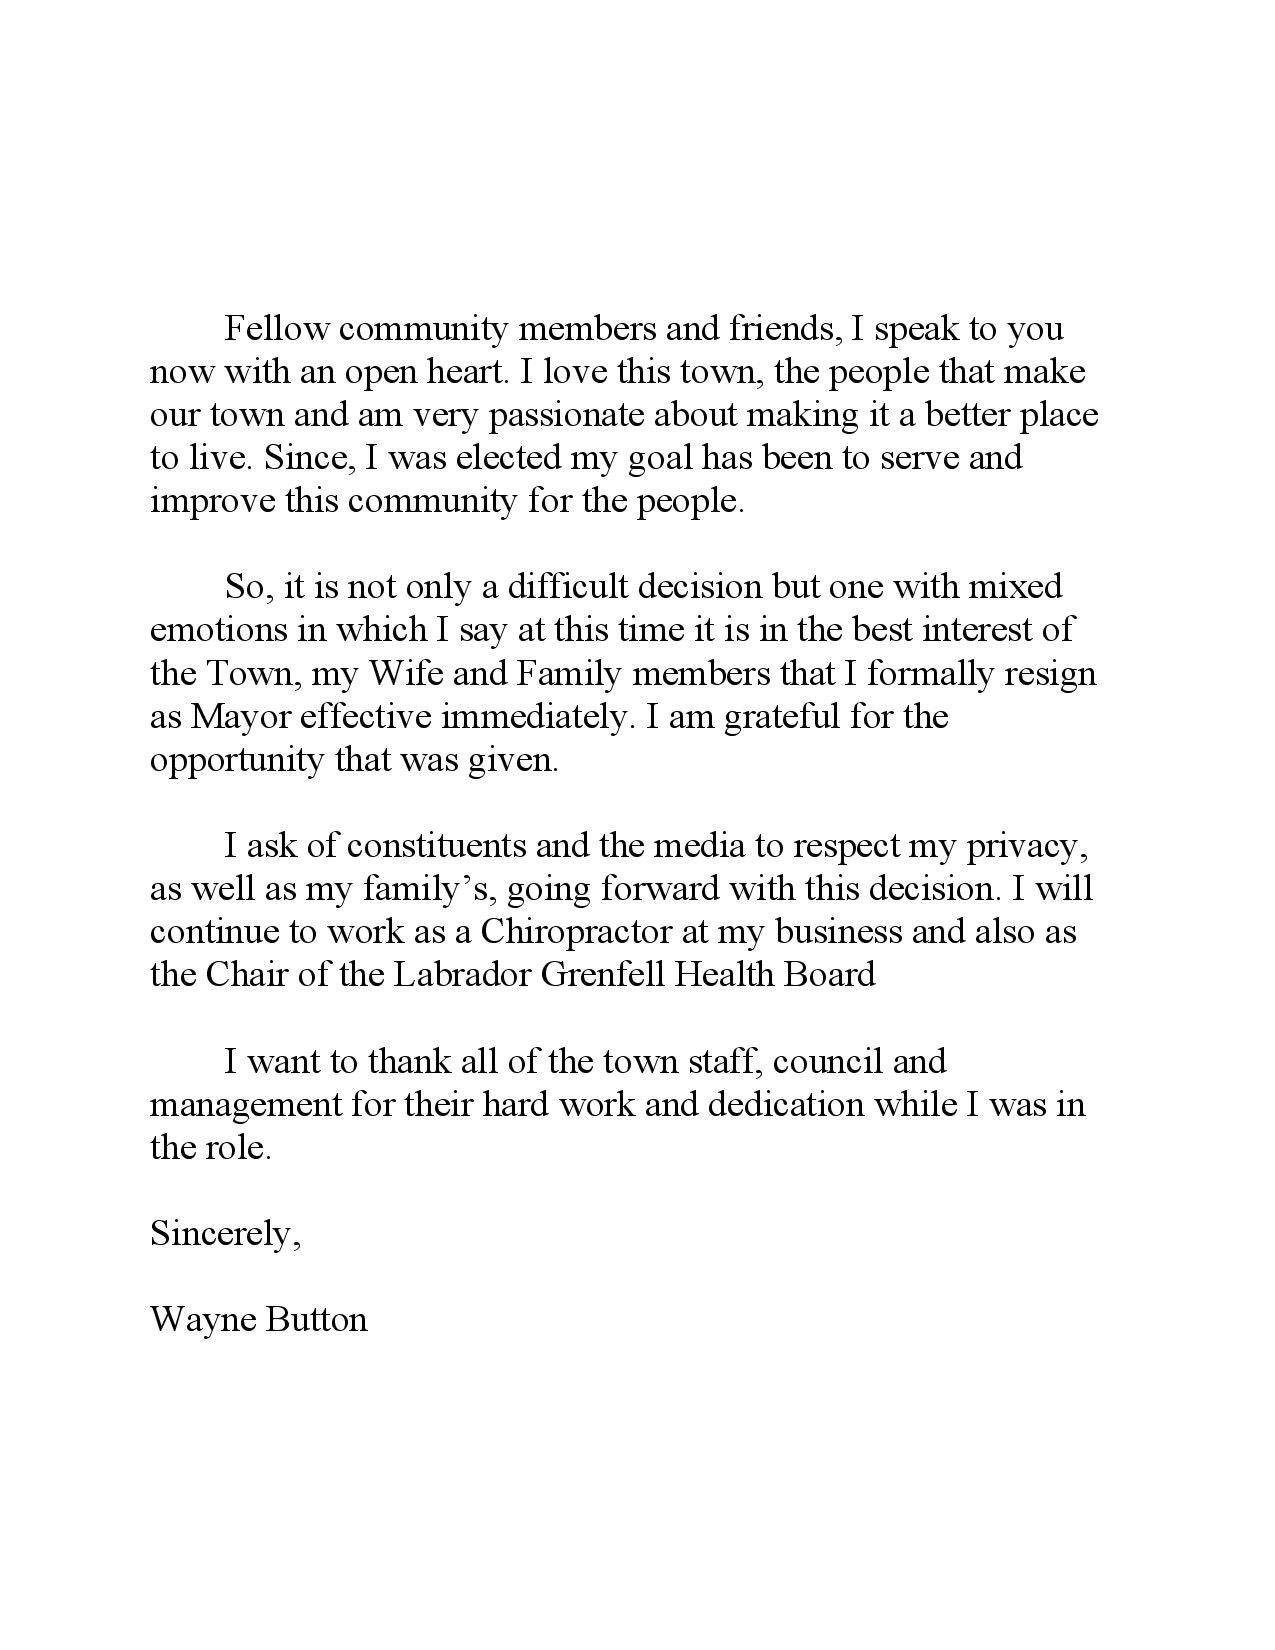 Wayne Button resigned as mayor of Labrador City on Wednesday, May 22 and posted this message on twitter.